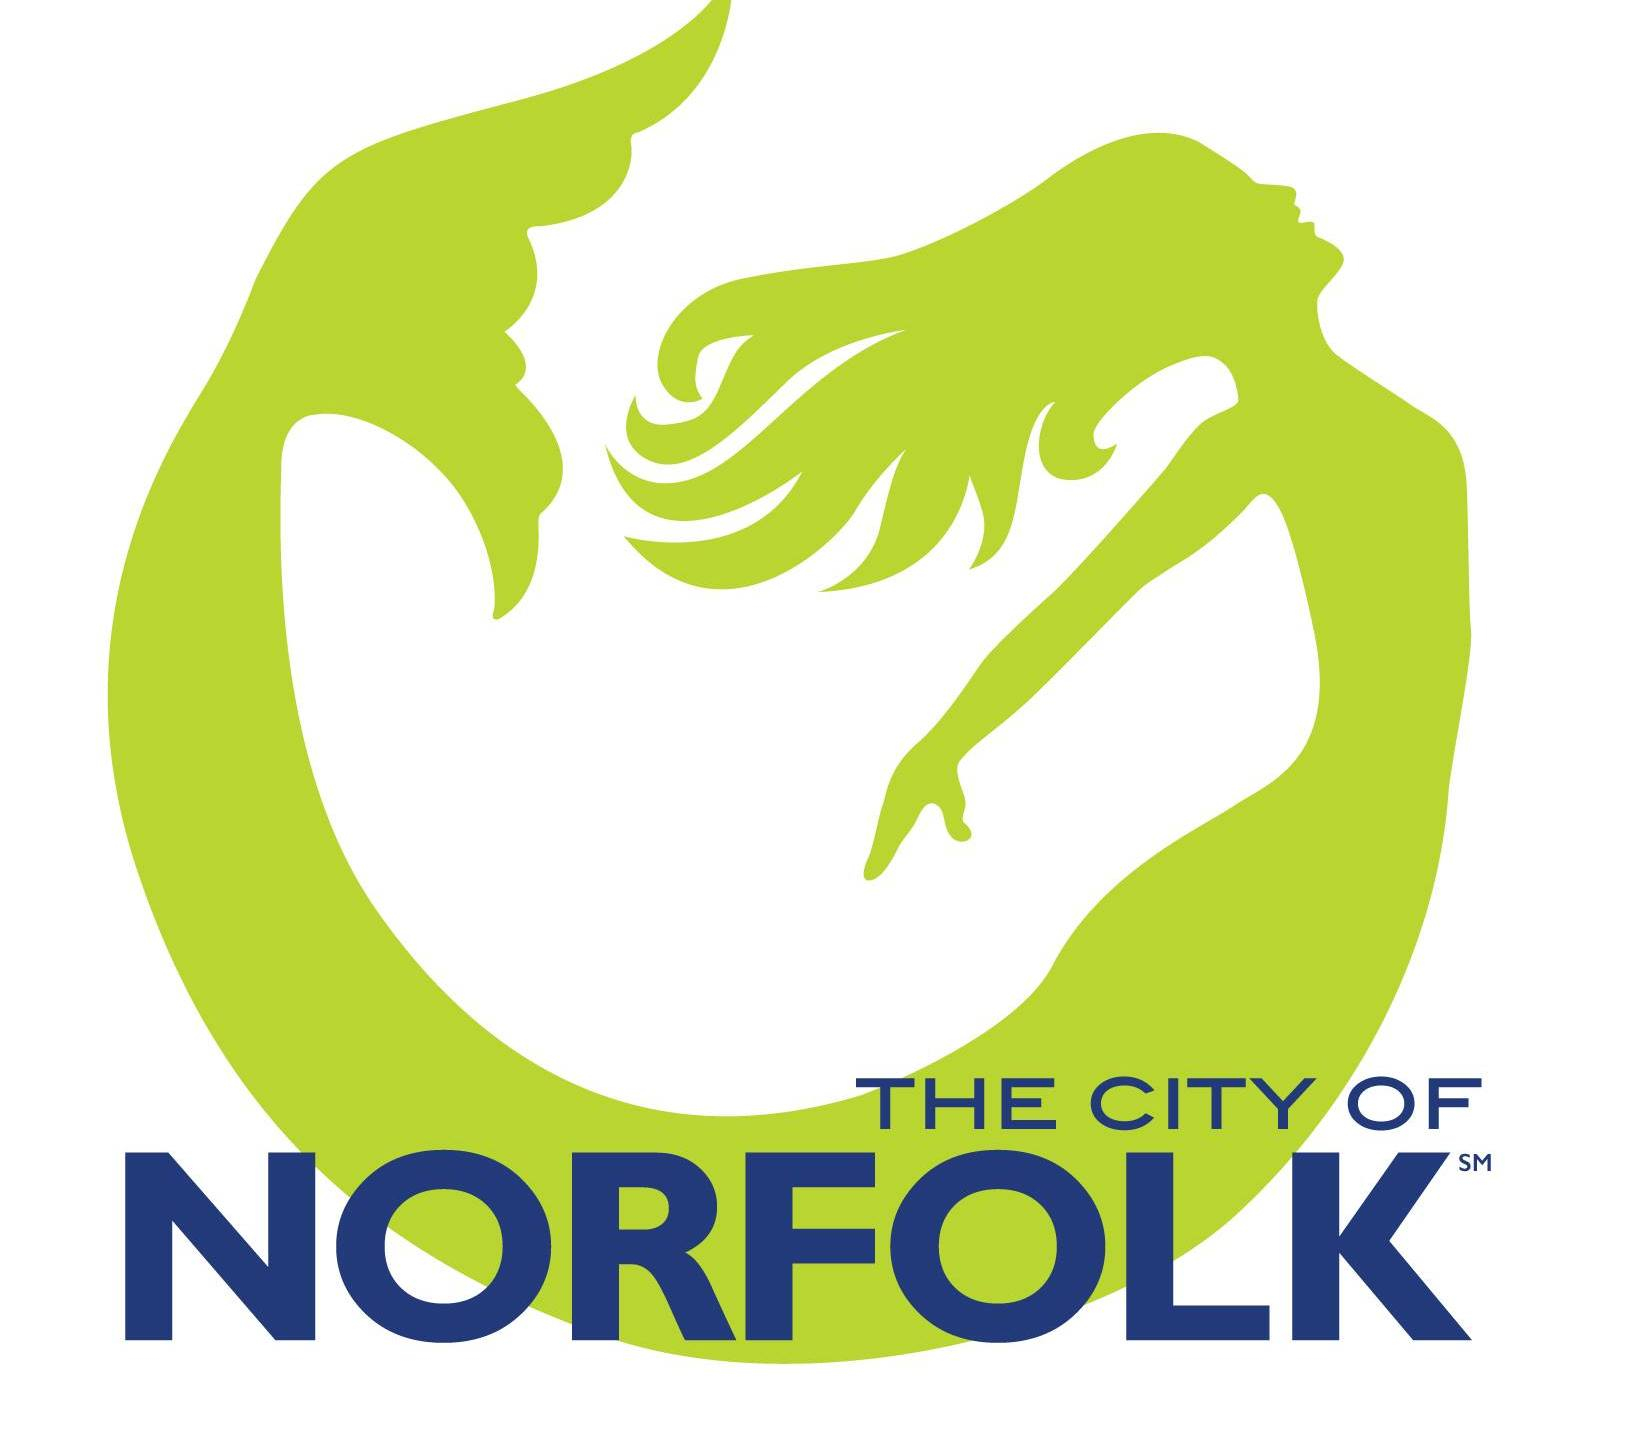 The city of Norfolk seal_308394